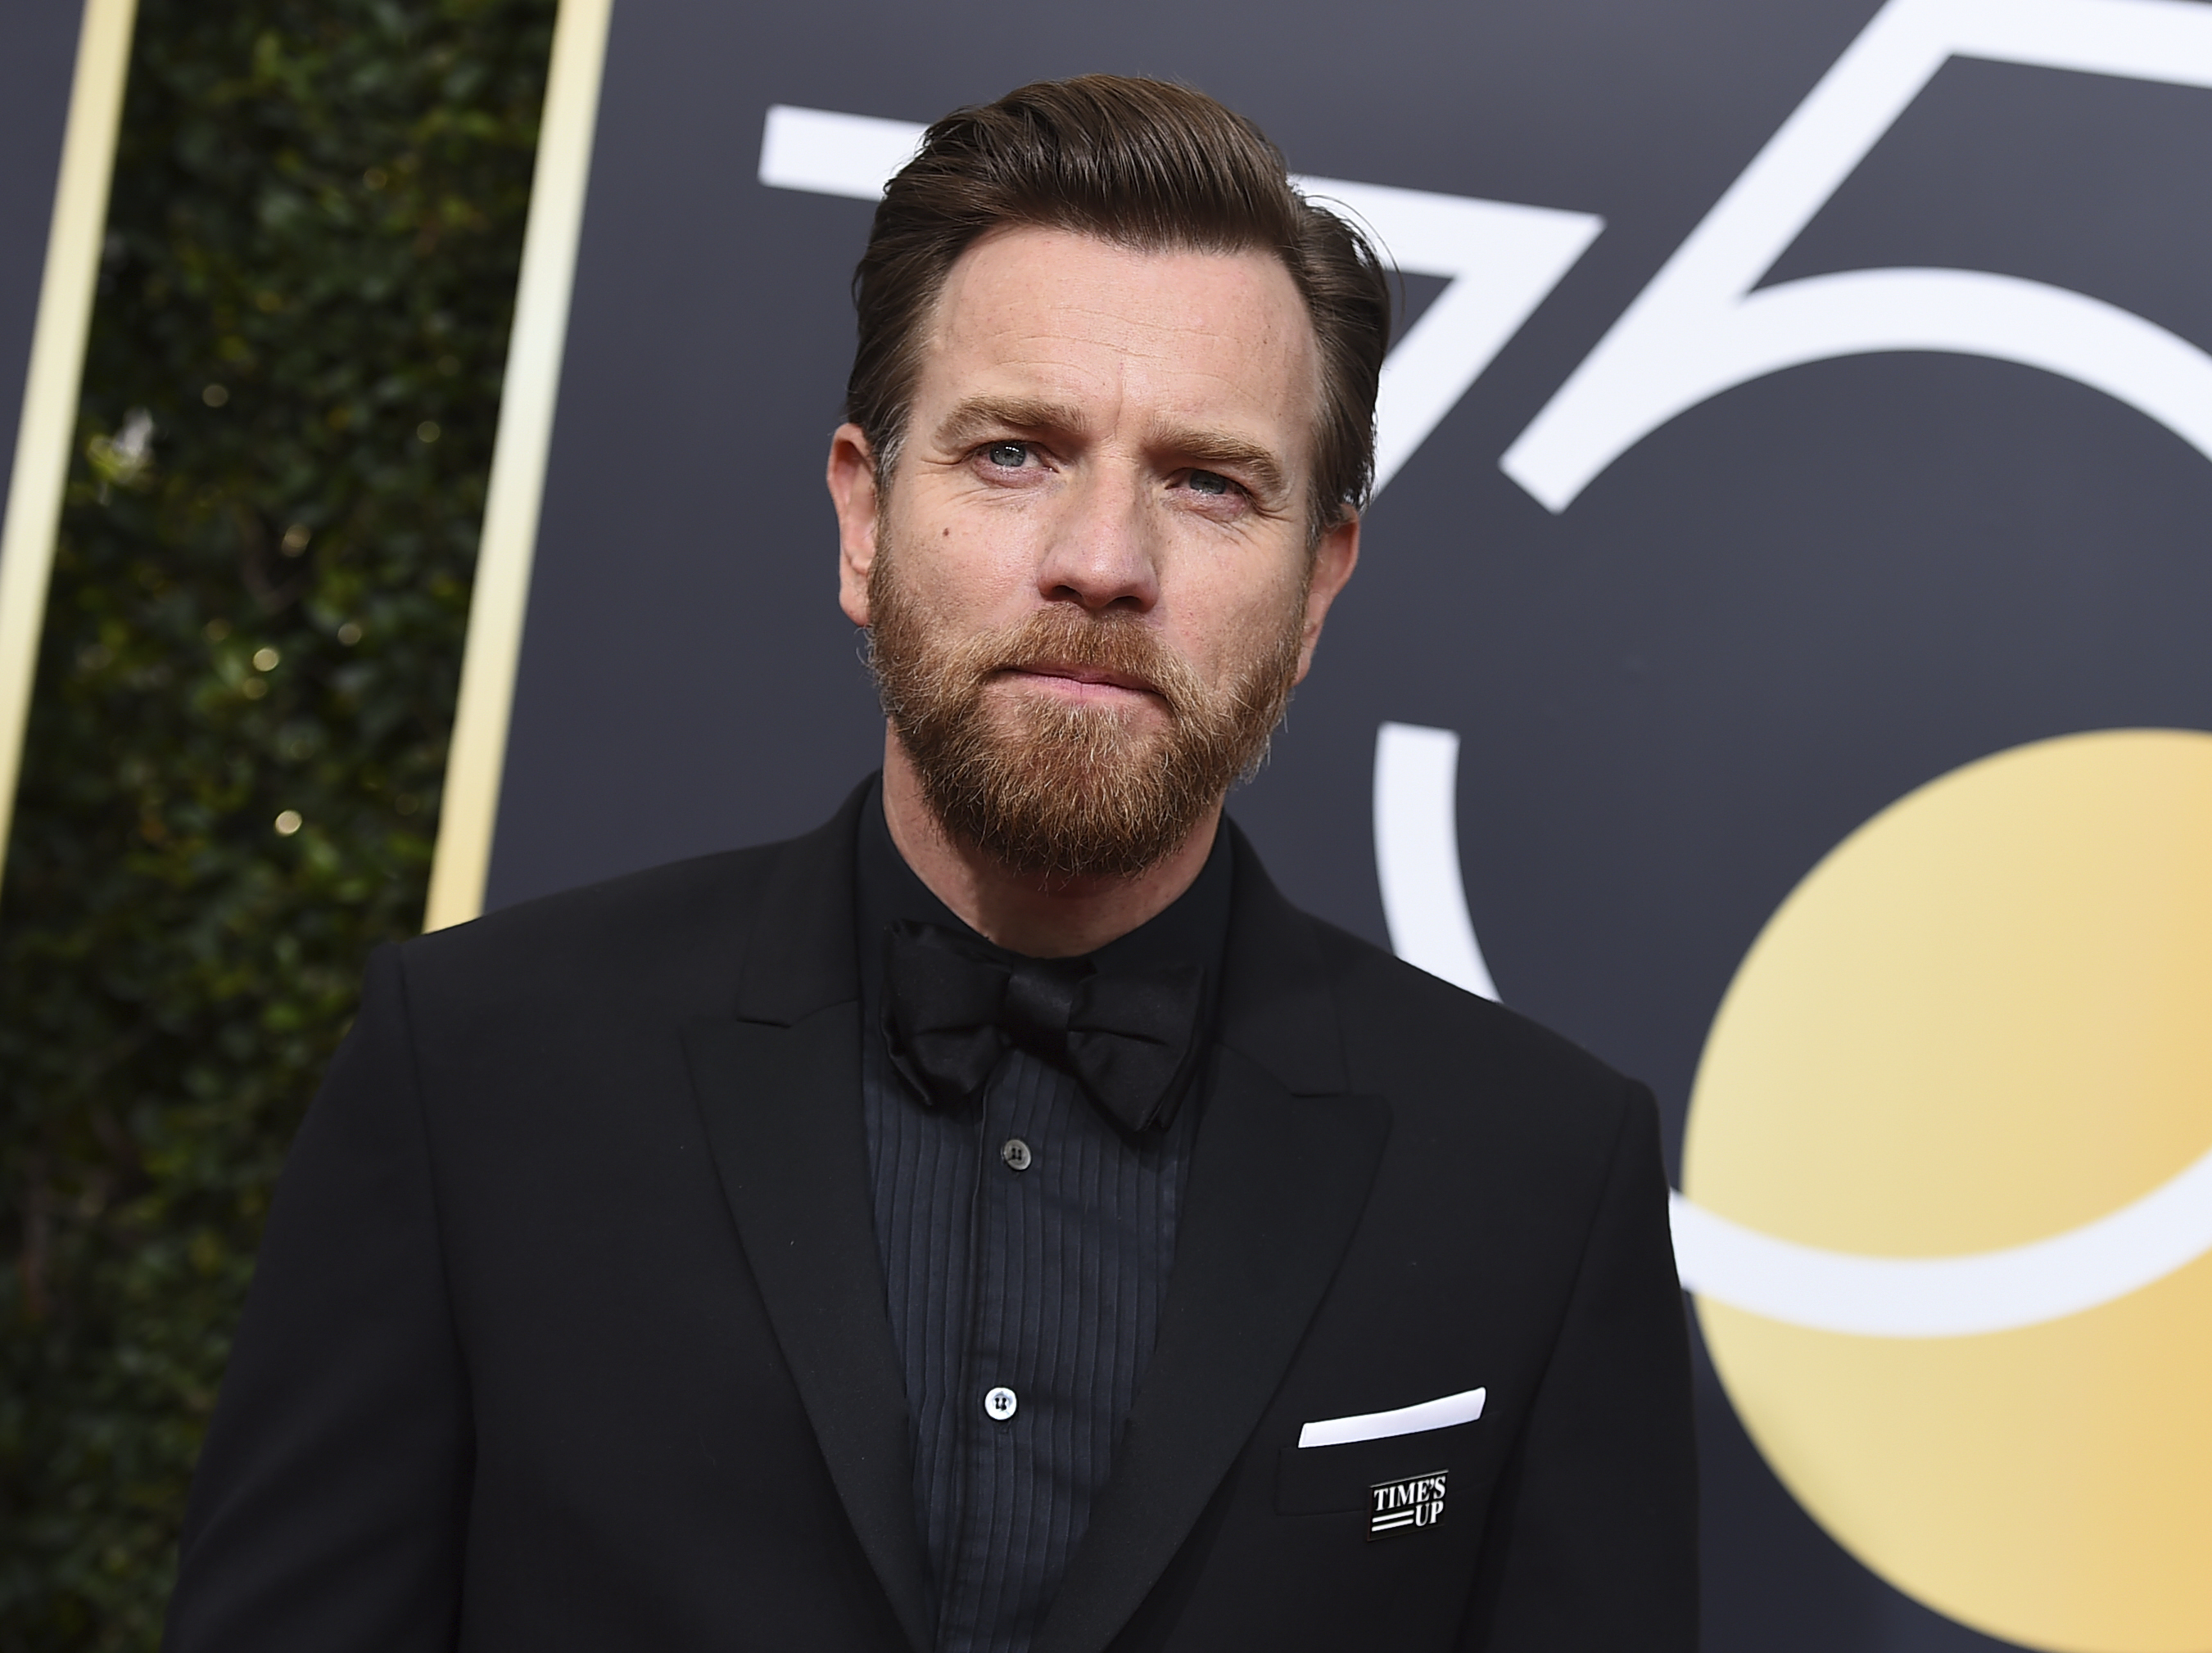 <div class='meta'><div class='origin-logo' data-origin='AP'></div><span class='caption-text' data-credit='Jordan Strauss/Invision/AP'>Ewan McGregor arrives at the 75th annual Golden Globe Awards at the Beverly Hilton Hotel on Sunday, Jan. 7, 2018, in Beverly Hills, Calif.</span></div>